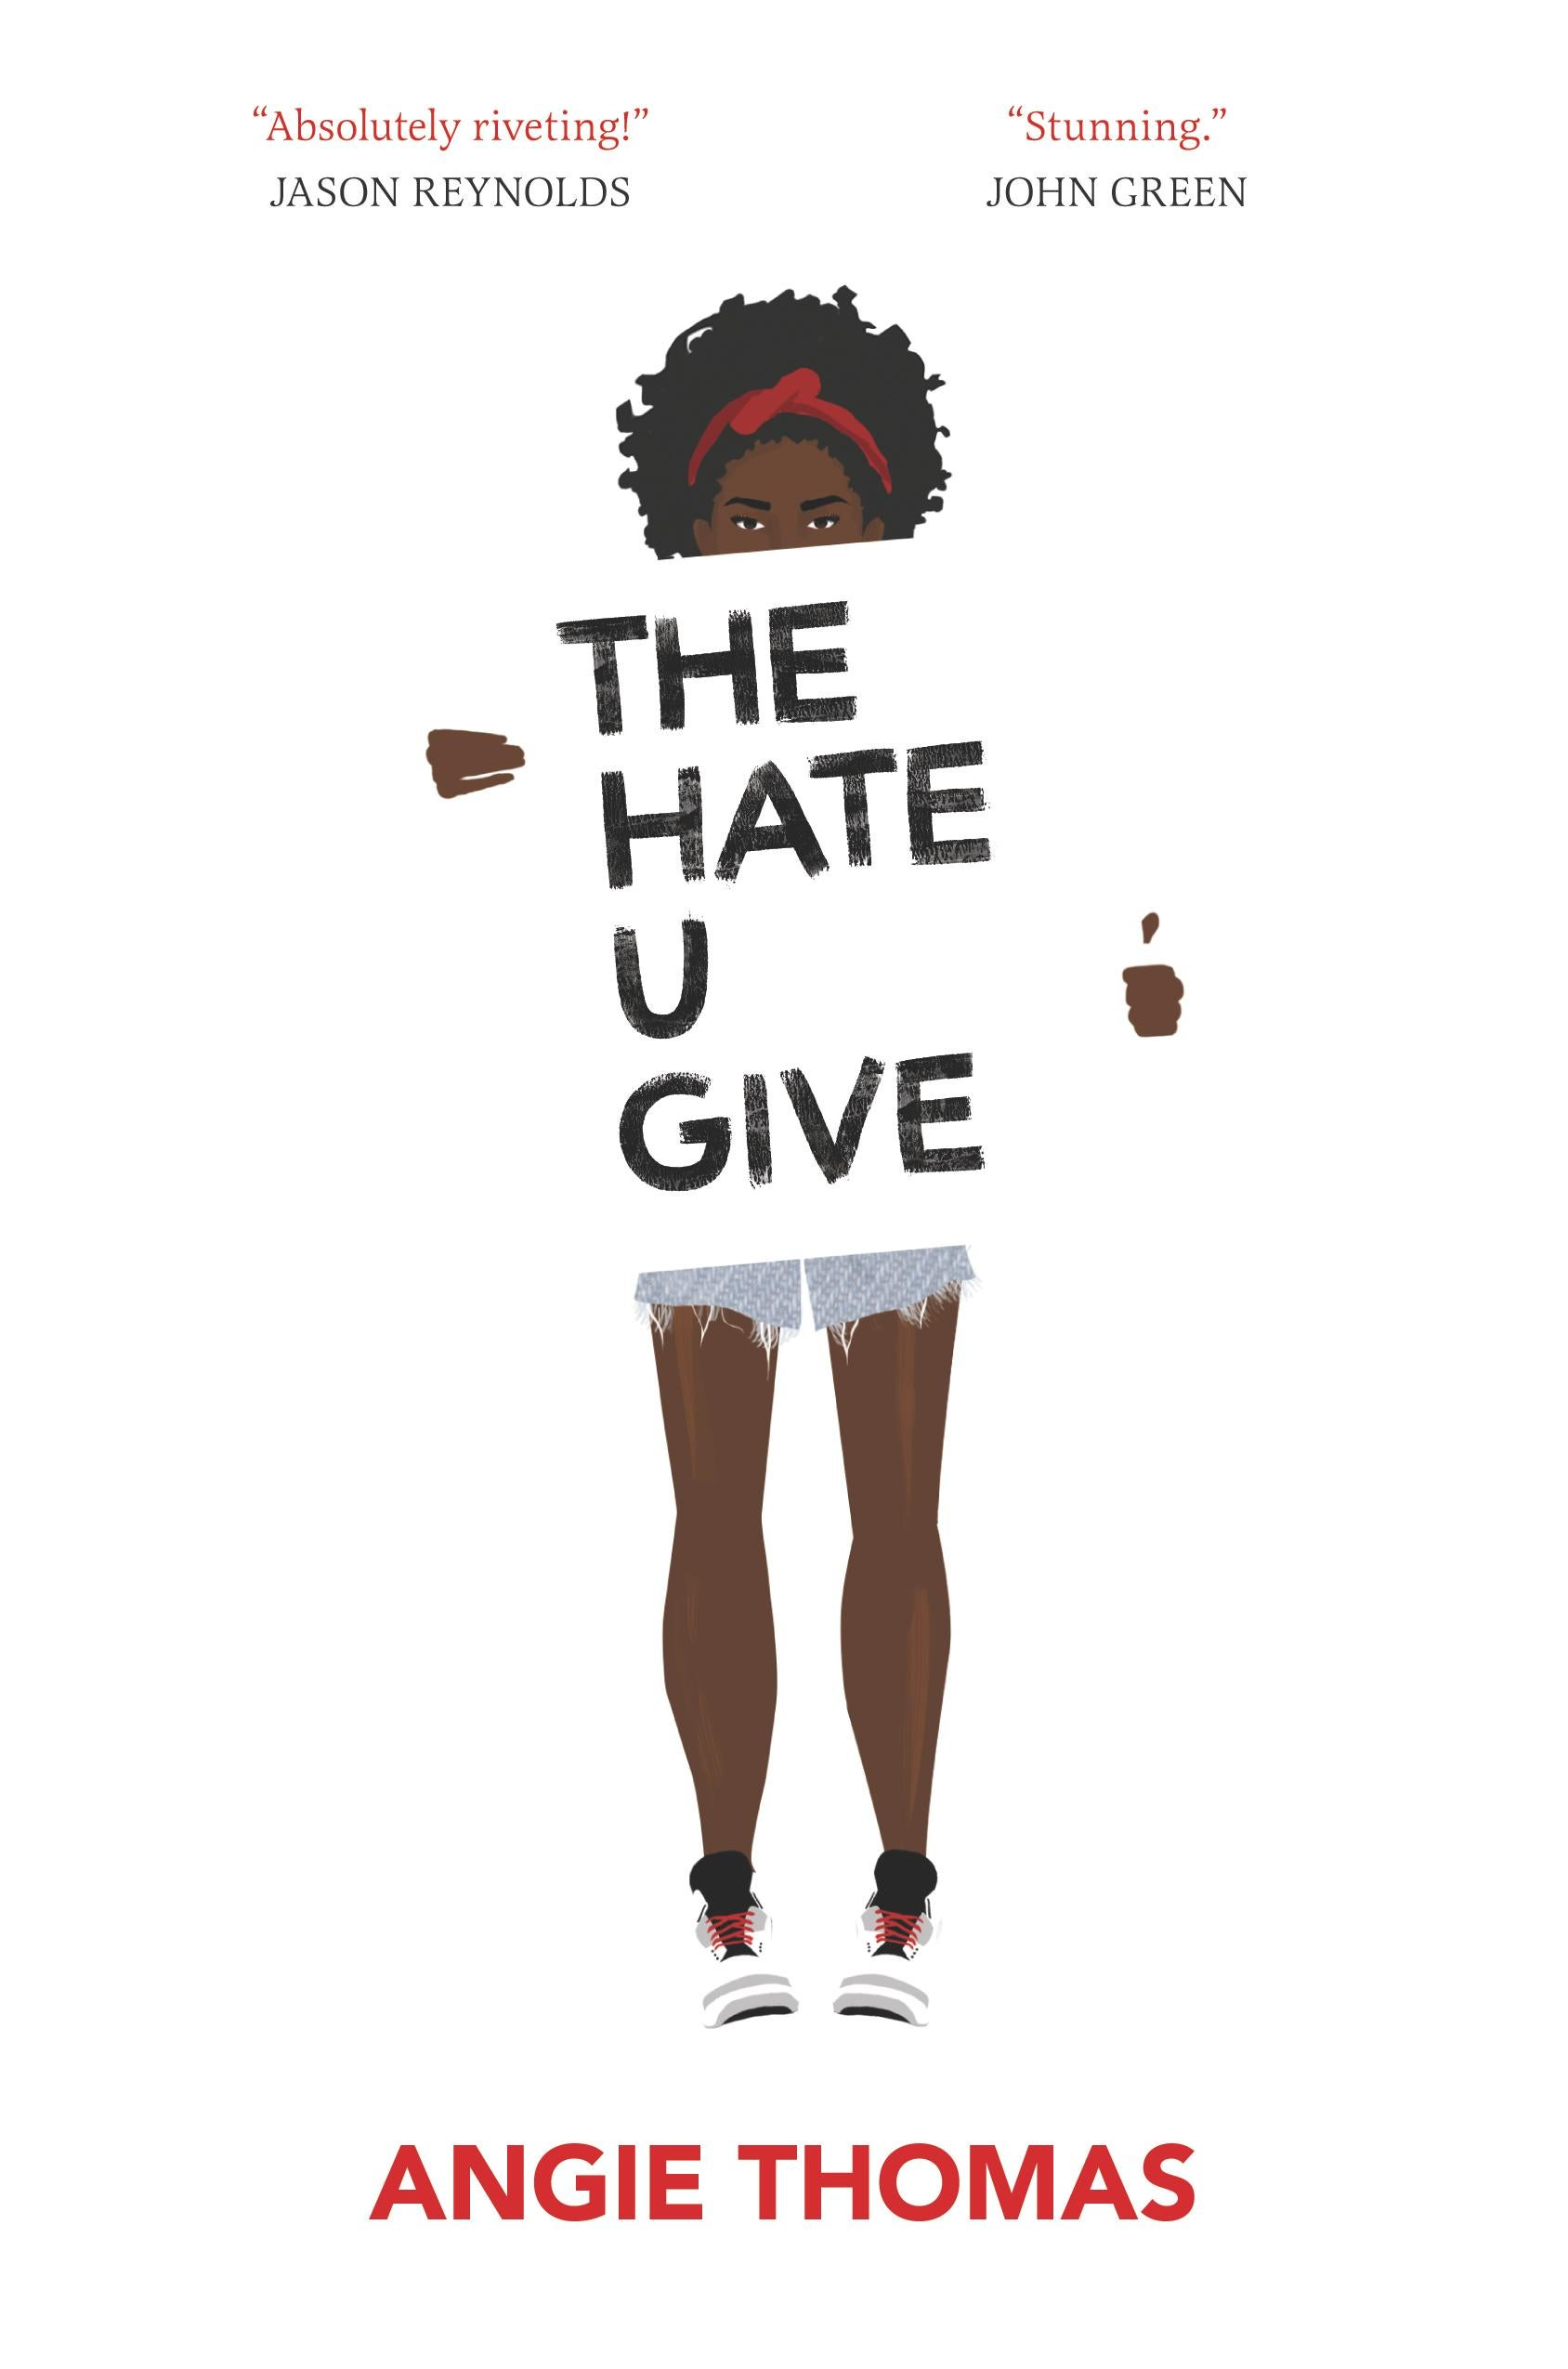 'The Hate U Give' Cover Illustrator Clarifies Comments on Casting Controversy: It's 'A Systematic Problem'